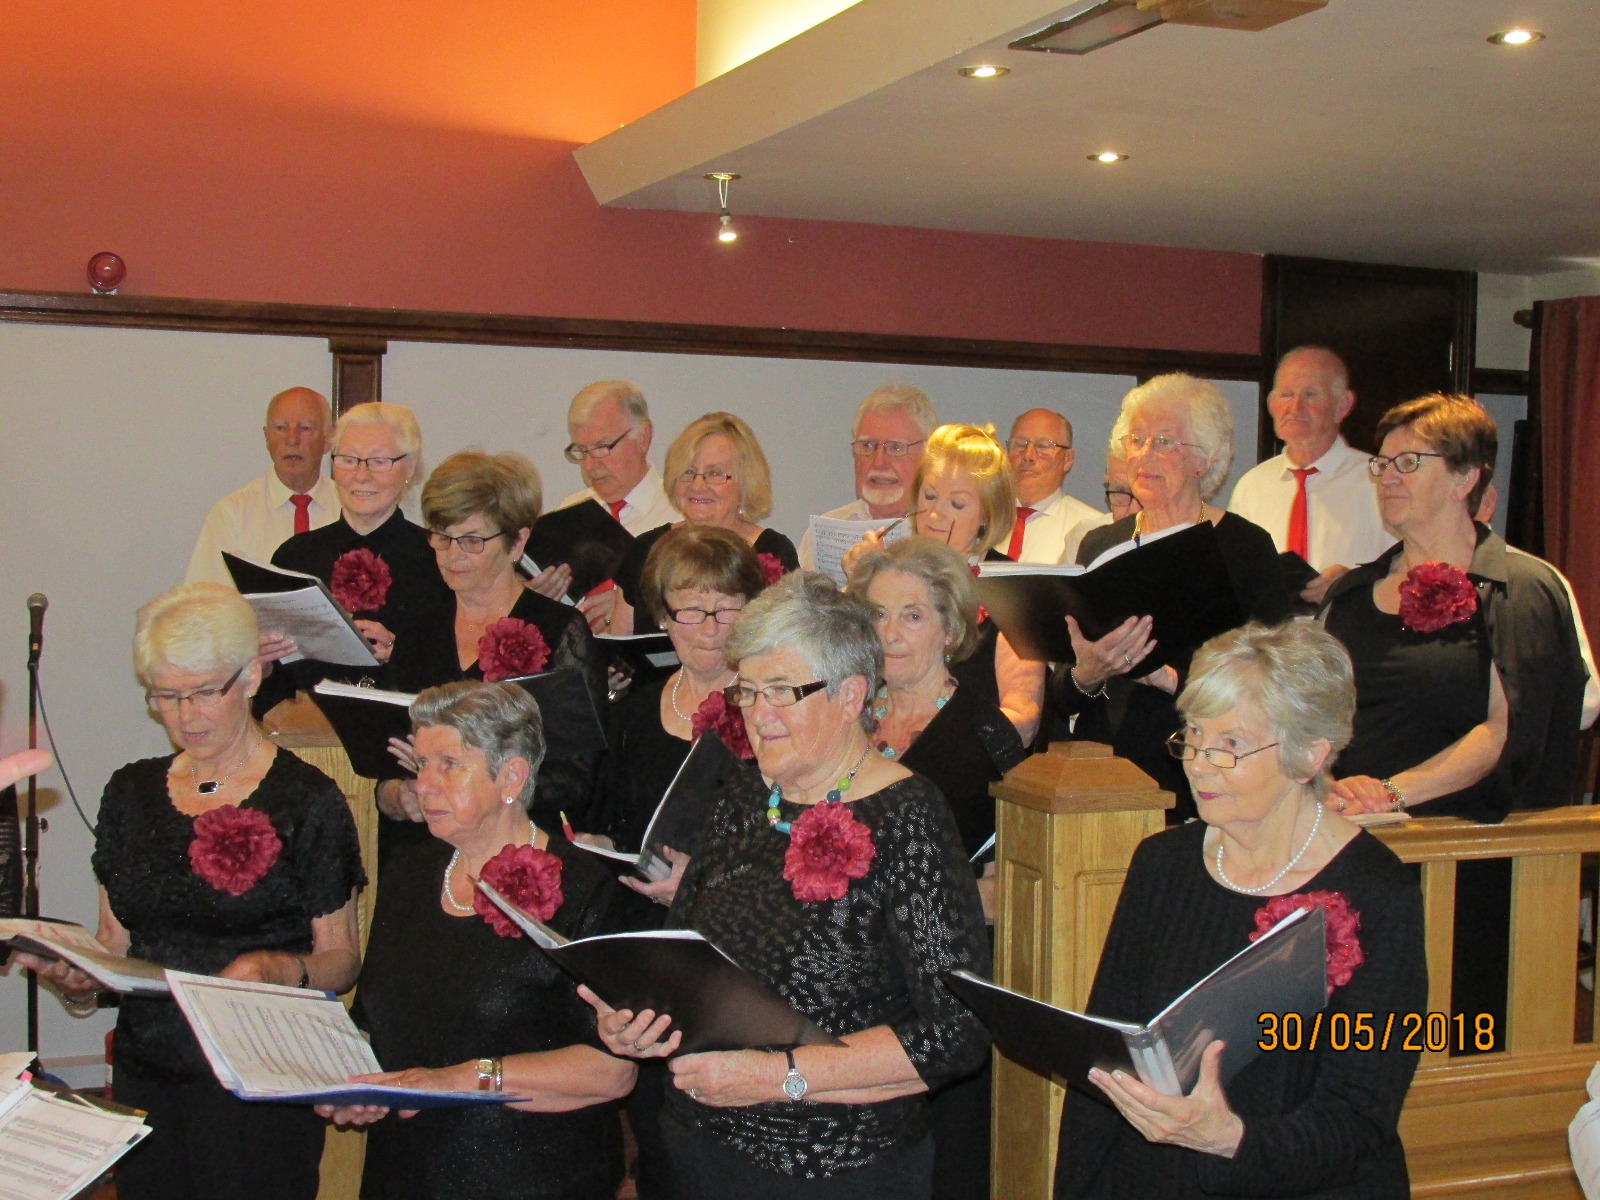 BARA Community Choir - 30 May 2018